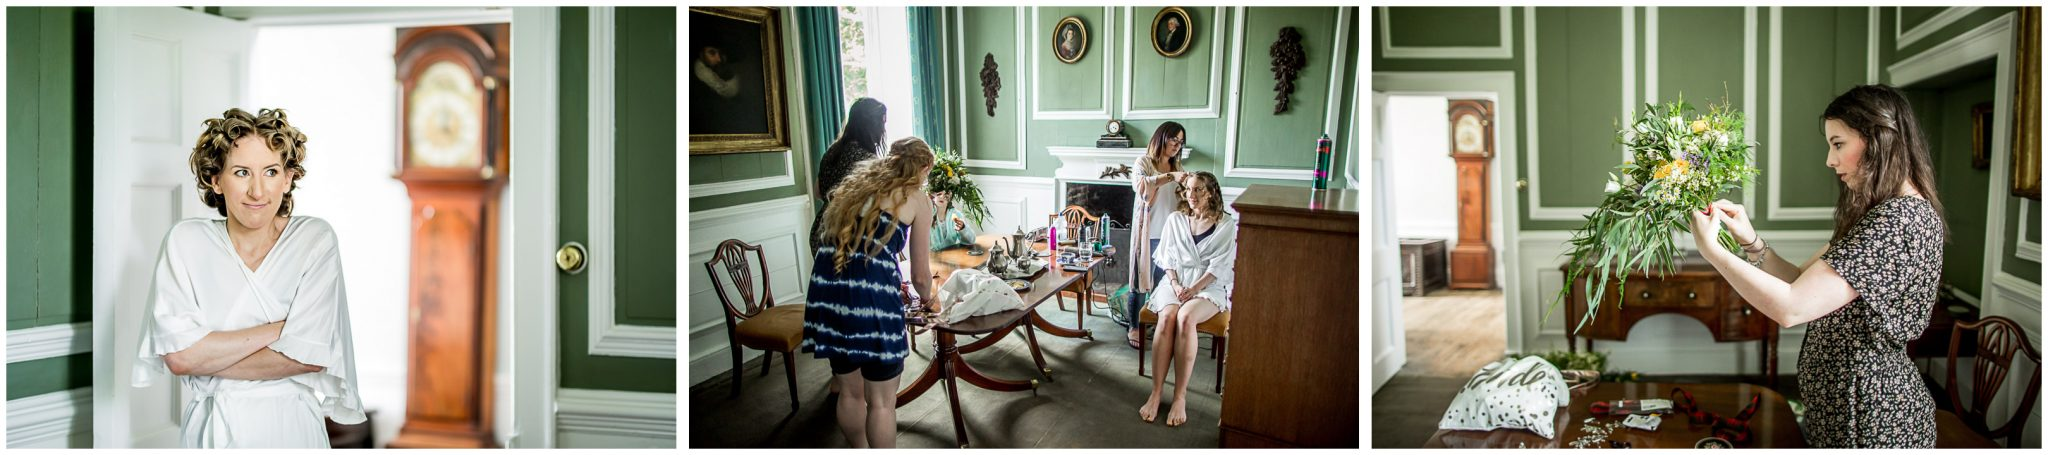 Bridal prep in the main house at exclusive use wedding venue in Cornwall